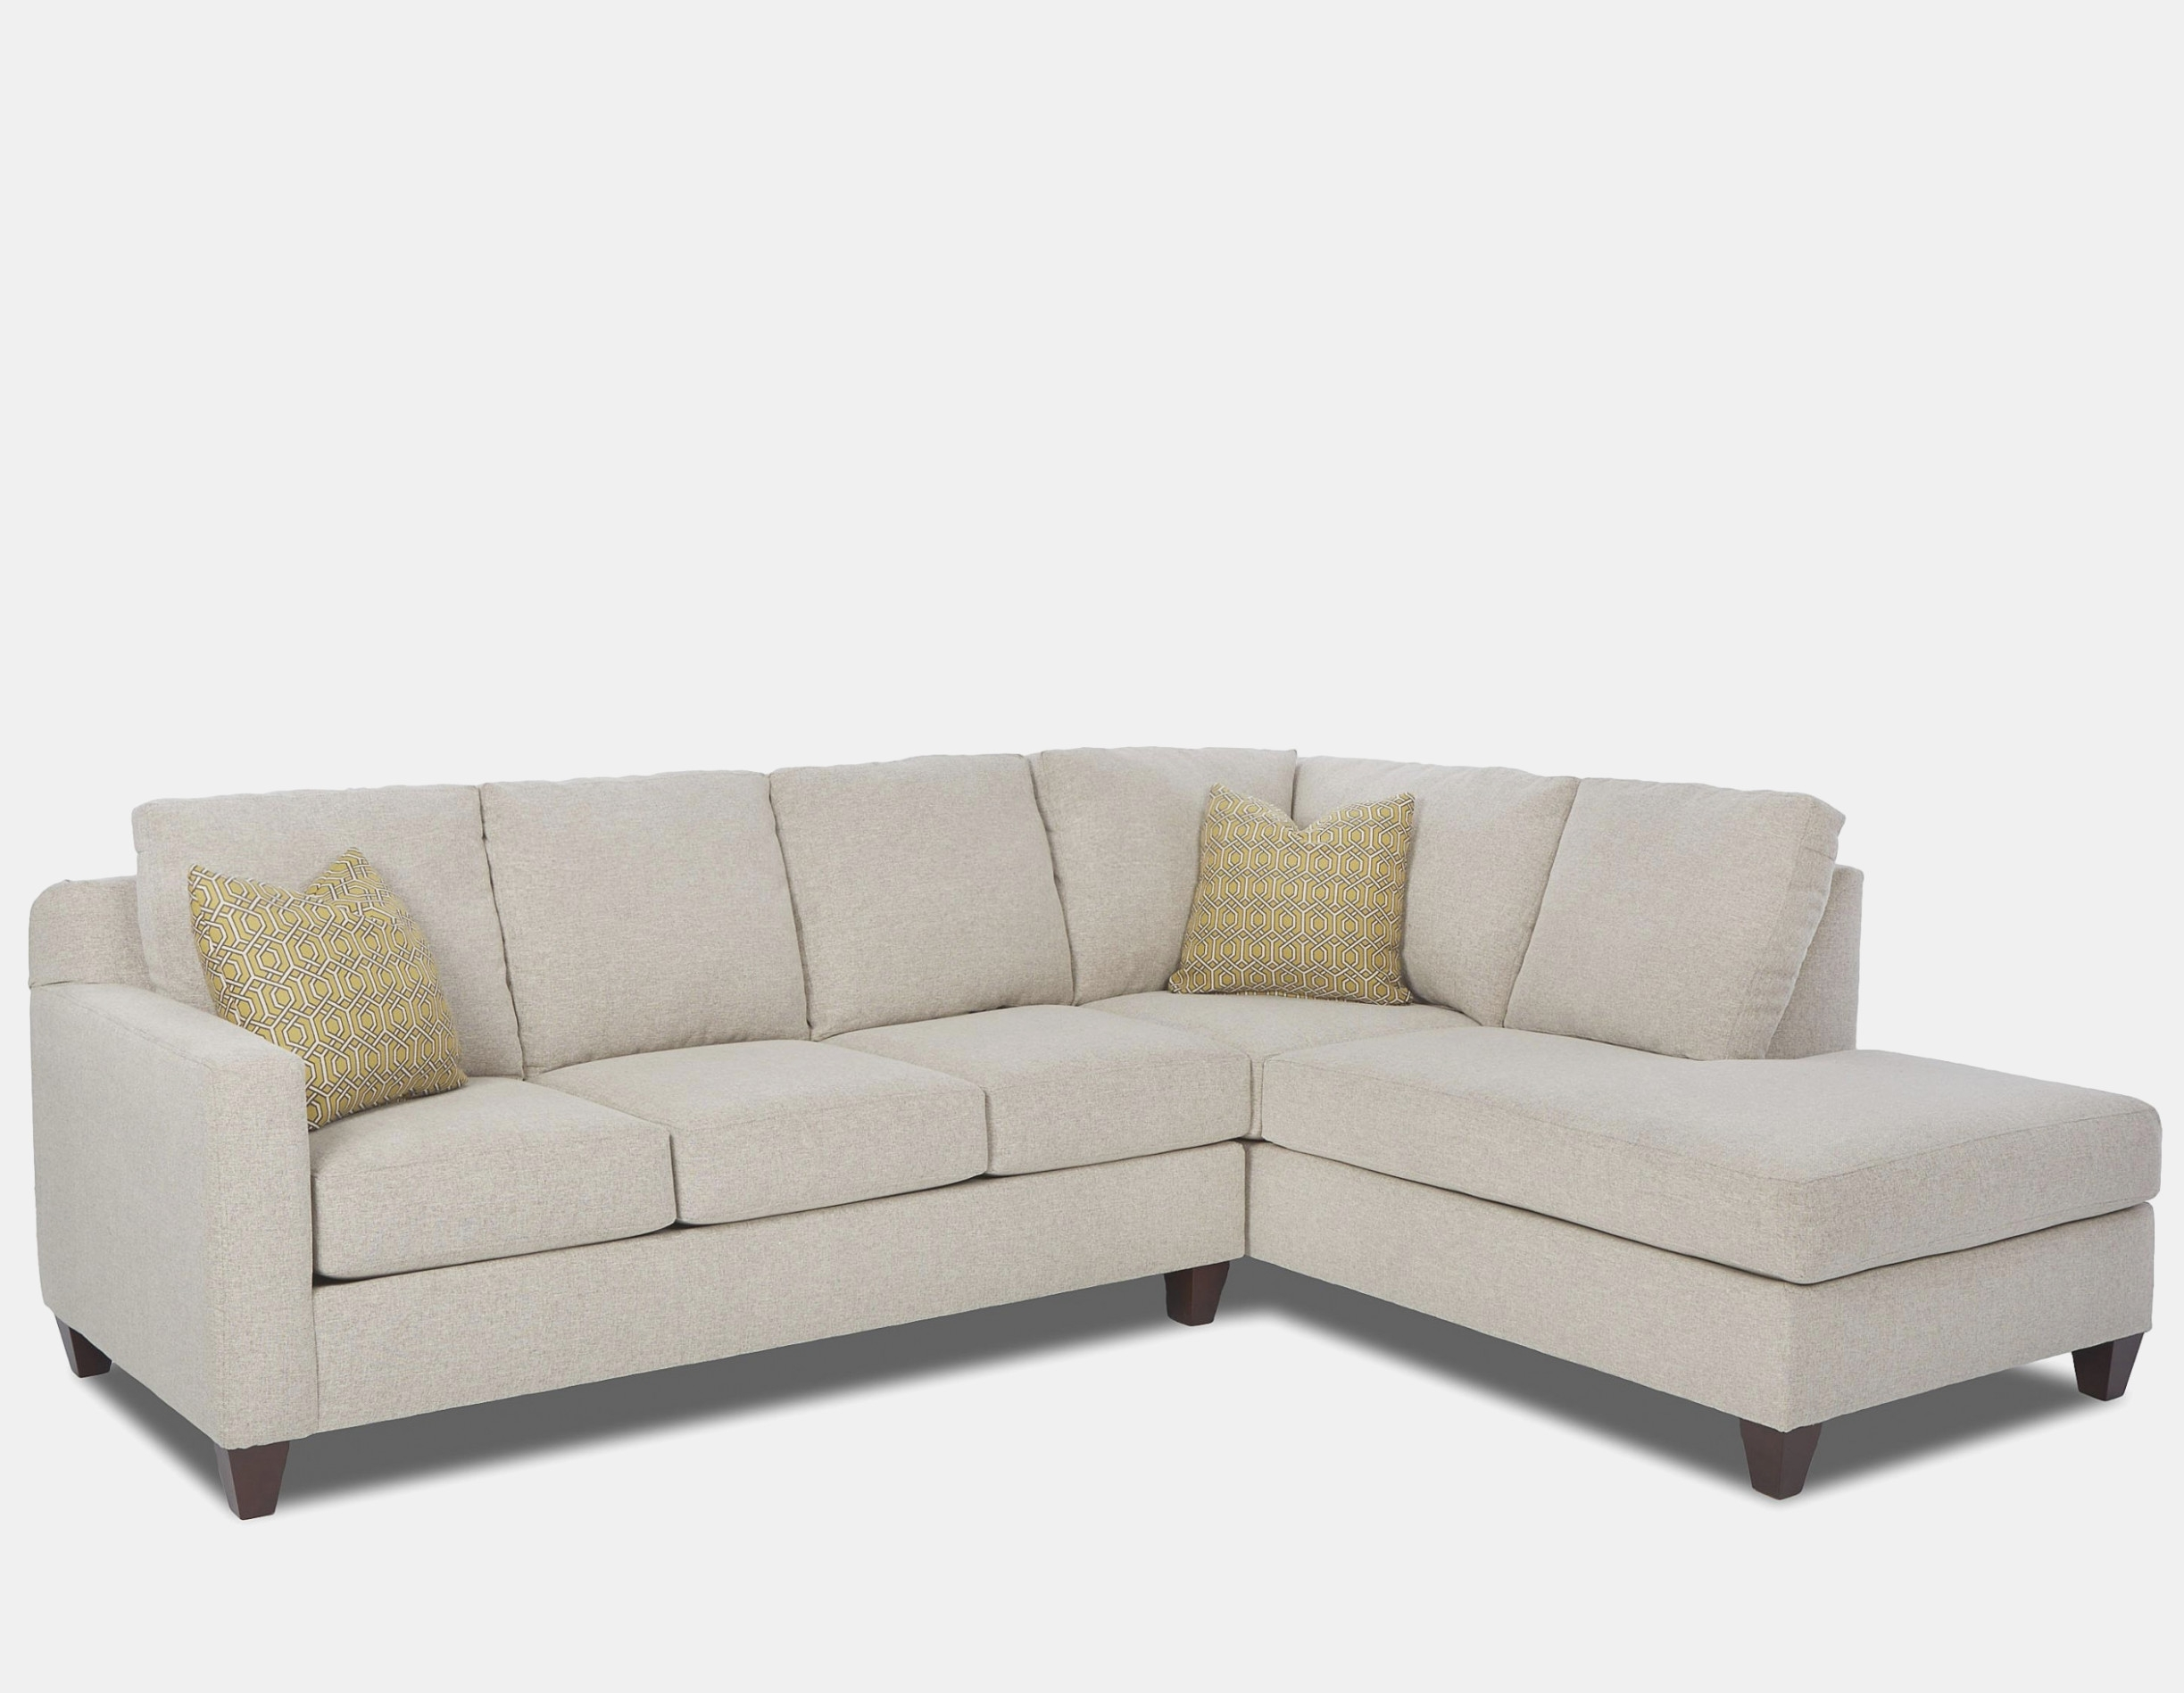 Contemporary 39 Piece Sectional With Right Arm Facing Sofa Chaise For Jobs Oat 2 Piece Sectionals With Left Facing Chaise (View 9 of 25)